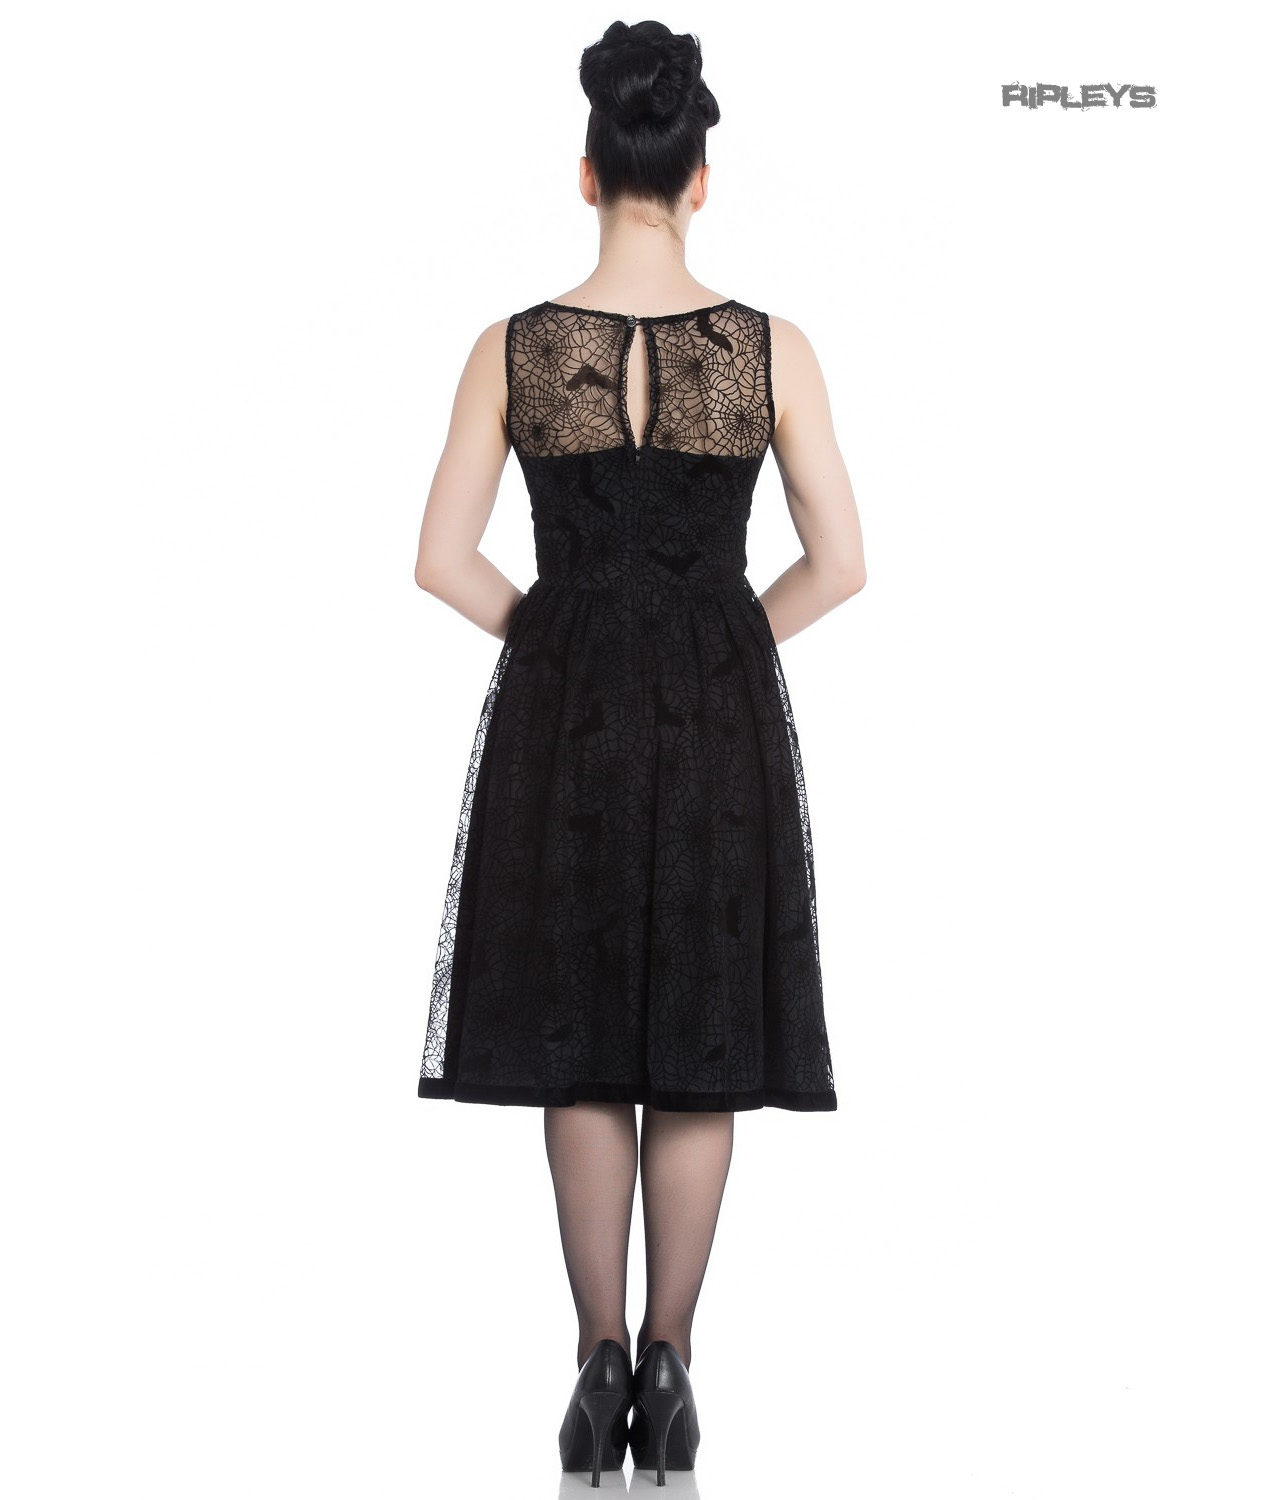 Hell-Bunny-50s-Black-Gothic-Net-Dress-Witchy-AMARANDE-Spiders-Bats-All-Sizes thumbnail 4